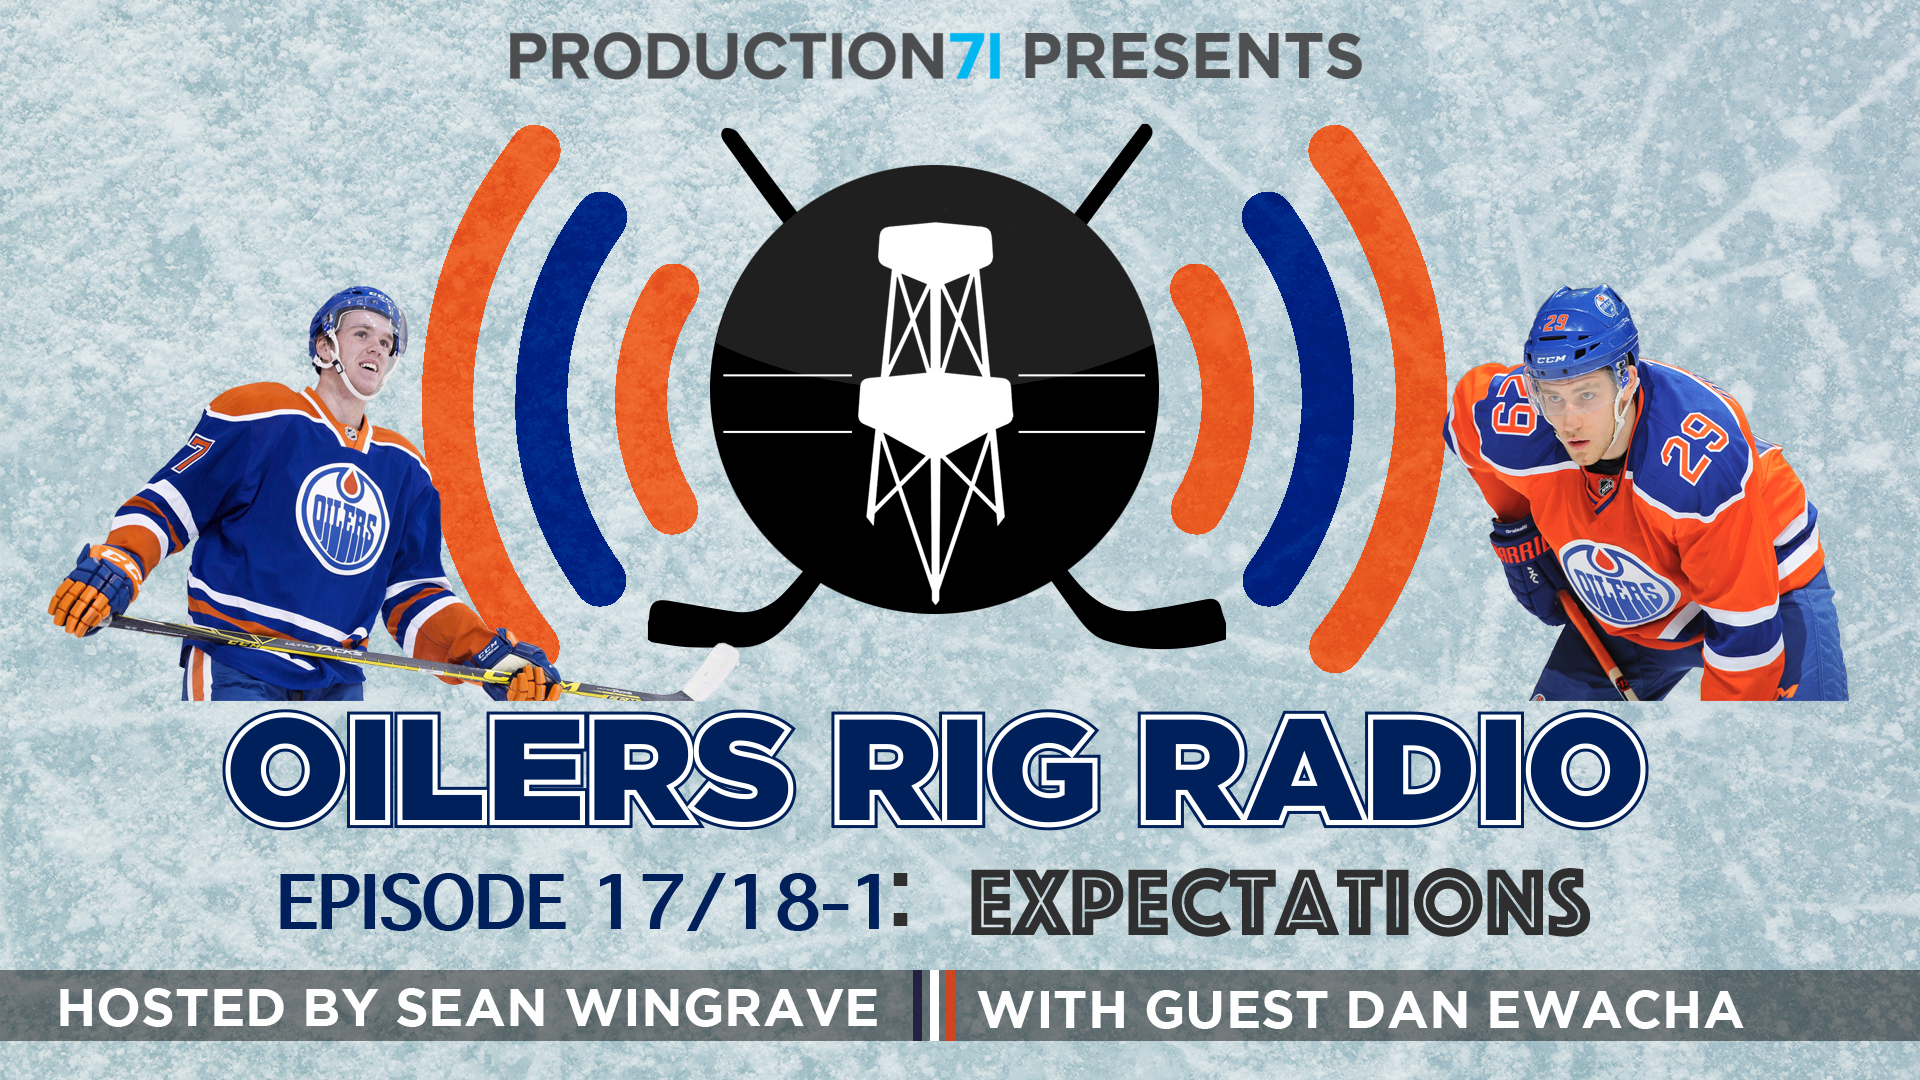 """The Oilers Rig Radio Episode 2017/18-1, """"Expectations."""""""